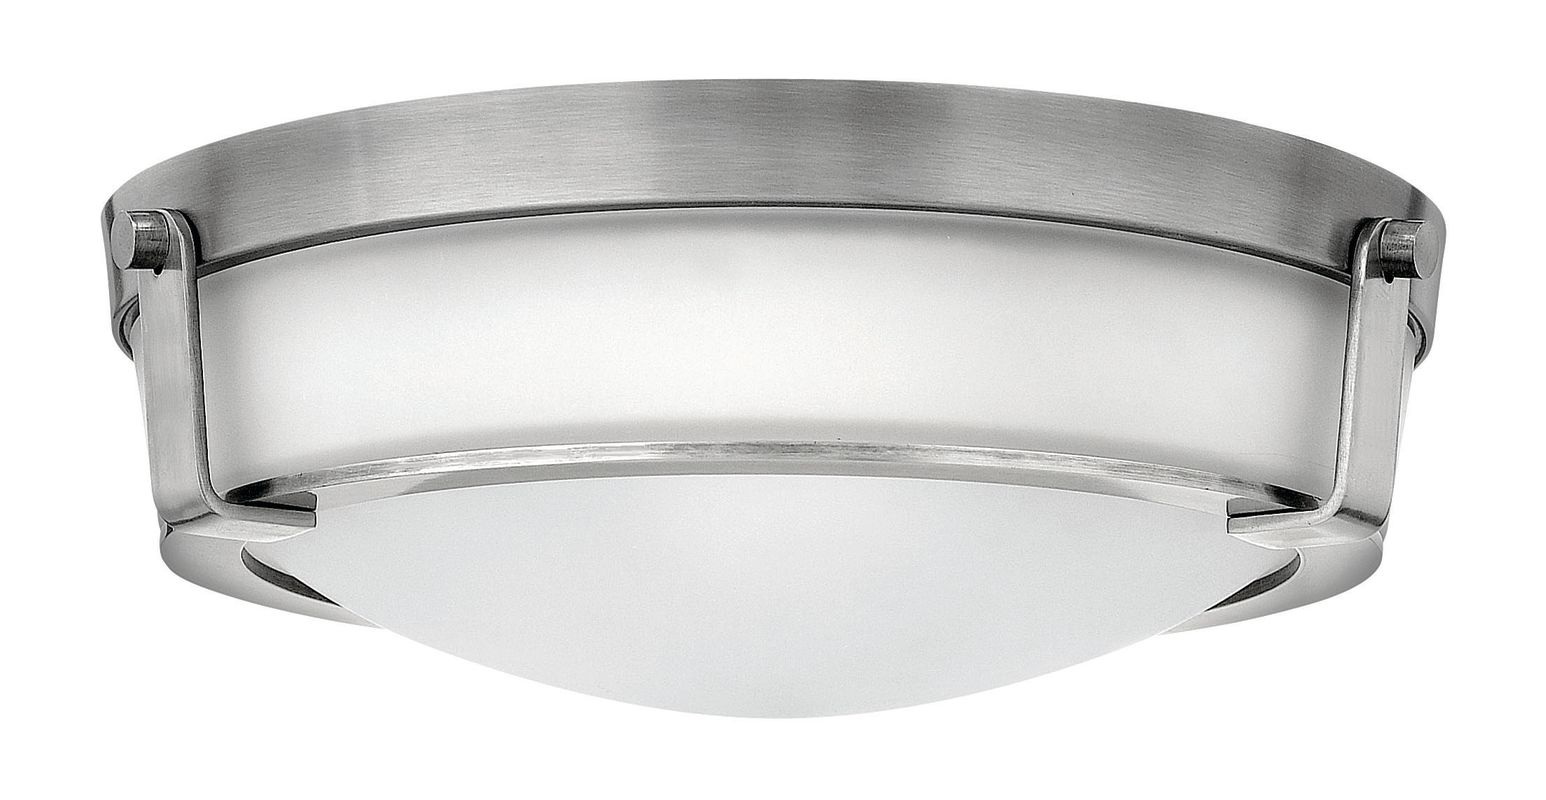 Hinkley Lighting 3225-GU24 3 Light Title 24 Fluorescent Flush Mount Sale $349.00 ITEM#: 2635207 MODEL# :3225AN-GU24 UPC#: 640665322521 :